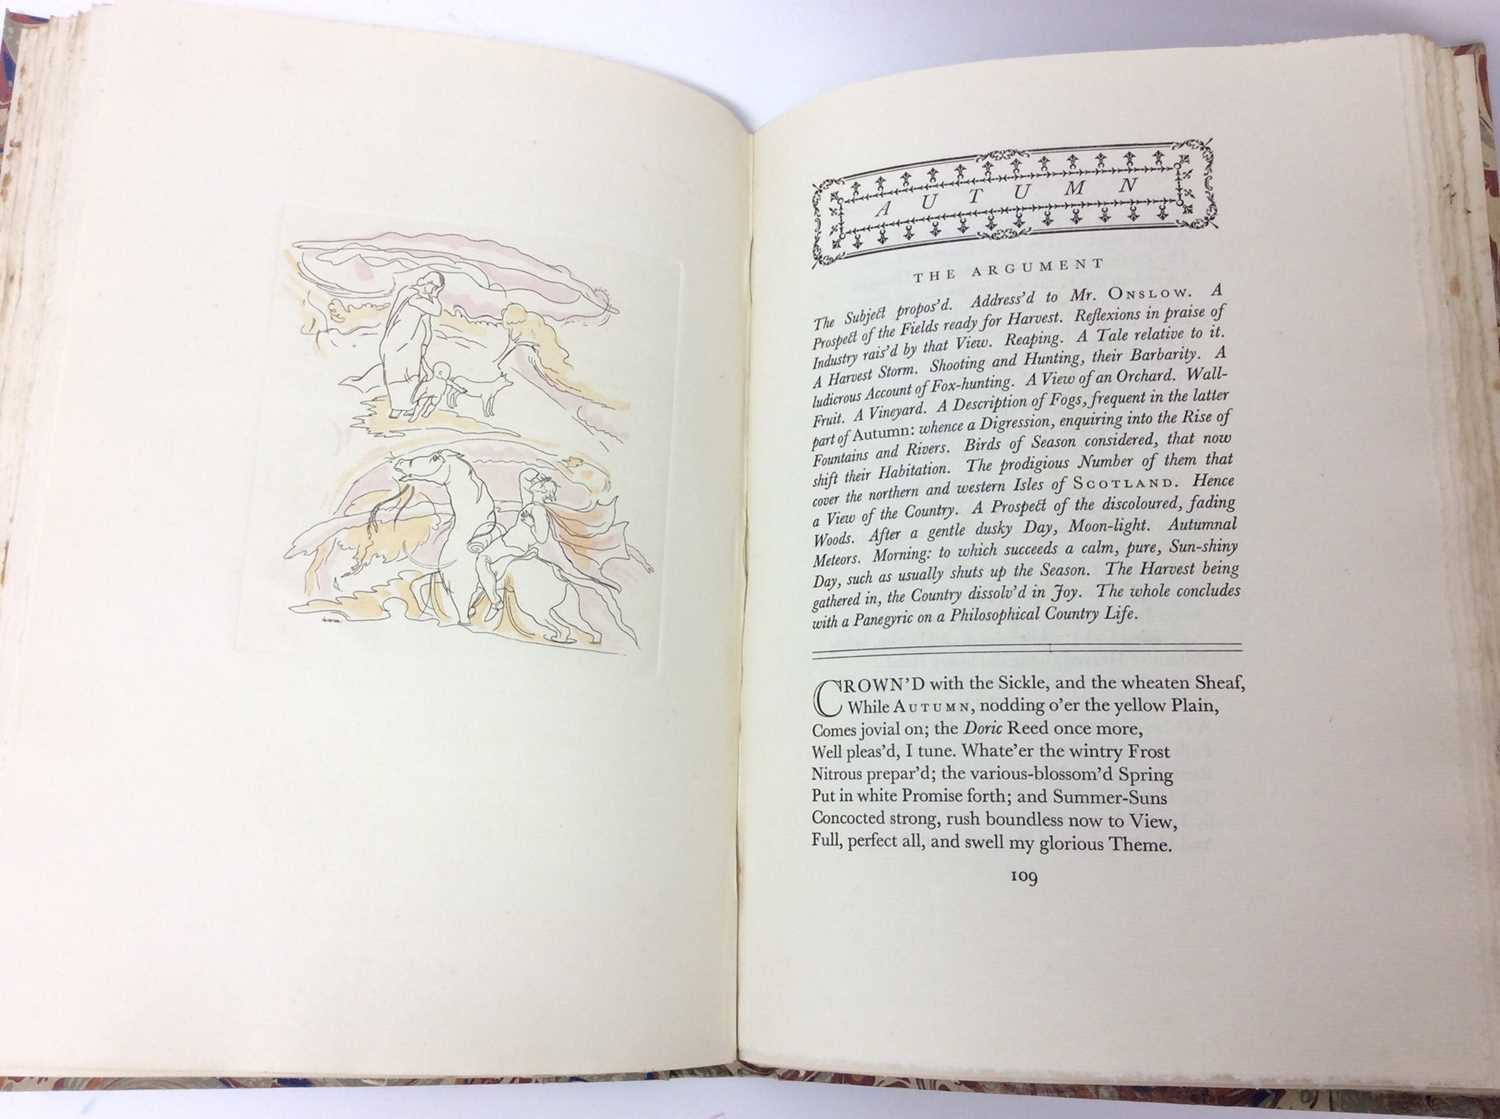 The Seasons by James Thomson, Nonesuch Press 1927, numbered 186 out of 1,500 copies, 1927 - Image 7 of 10